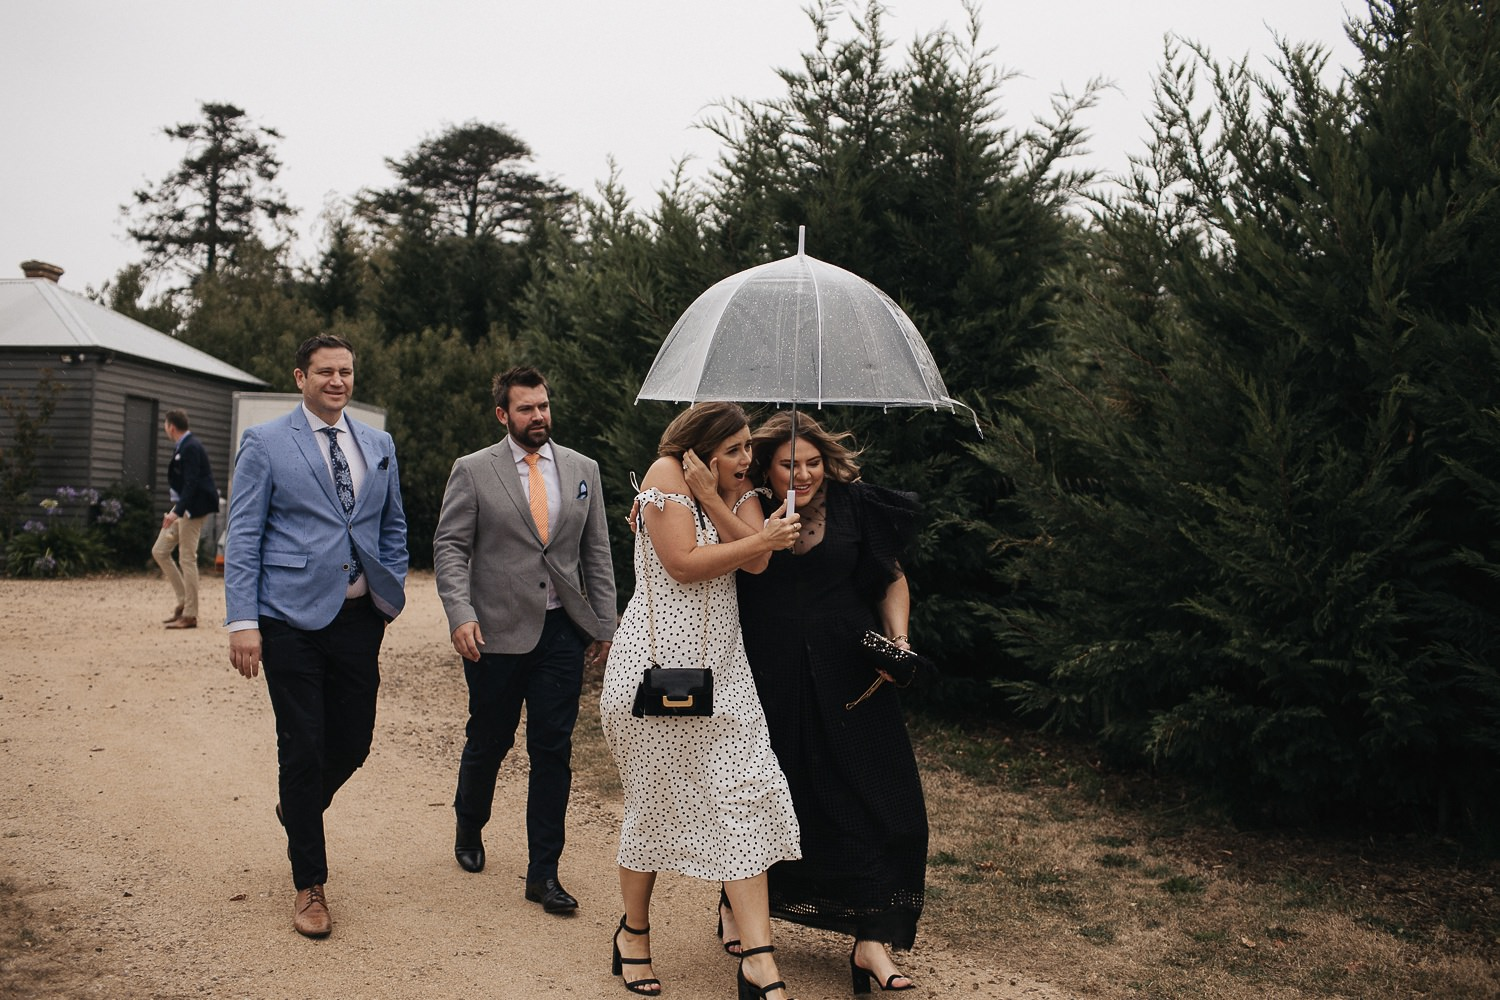 private-property-wedding-relaxed-melbourne-fun-documentary-photography_0054.jpg